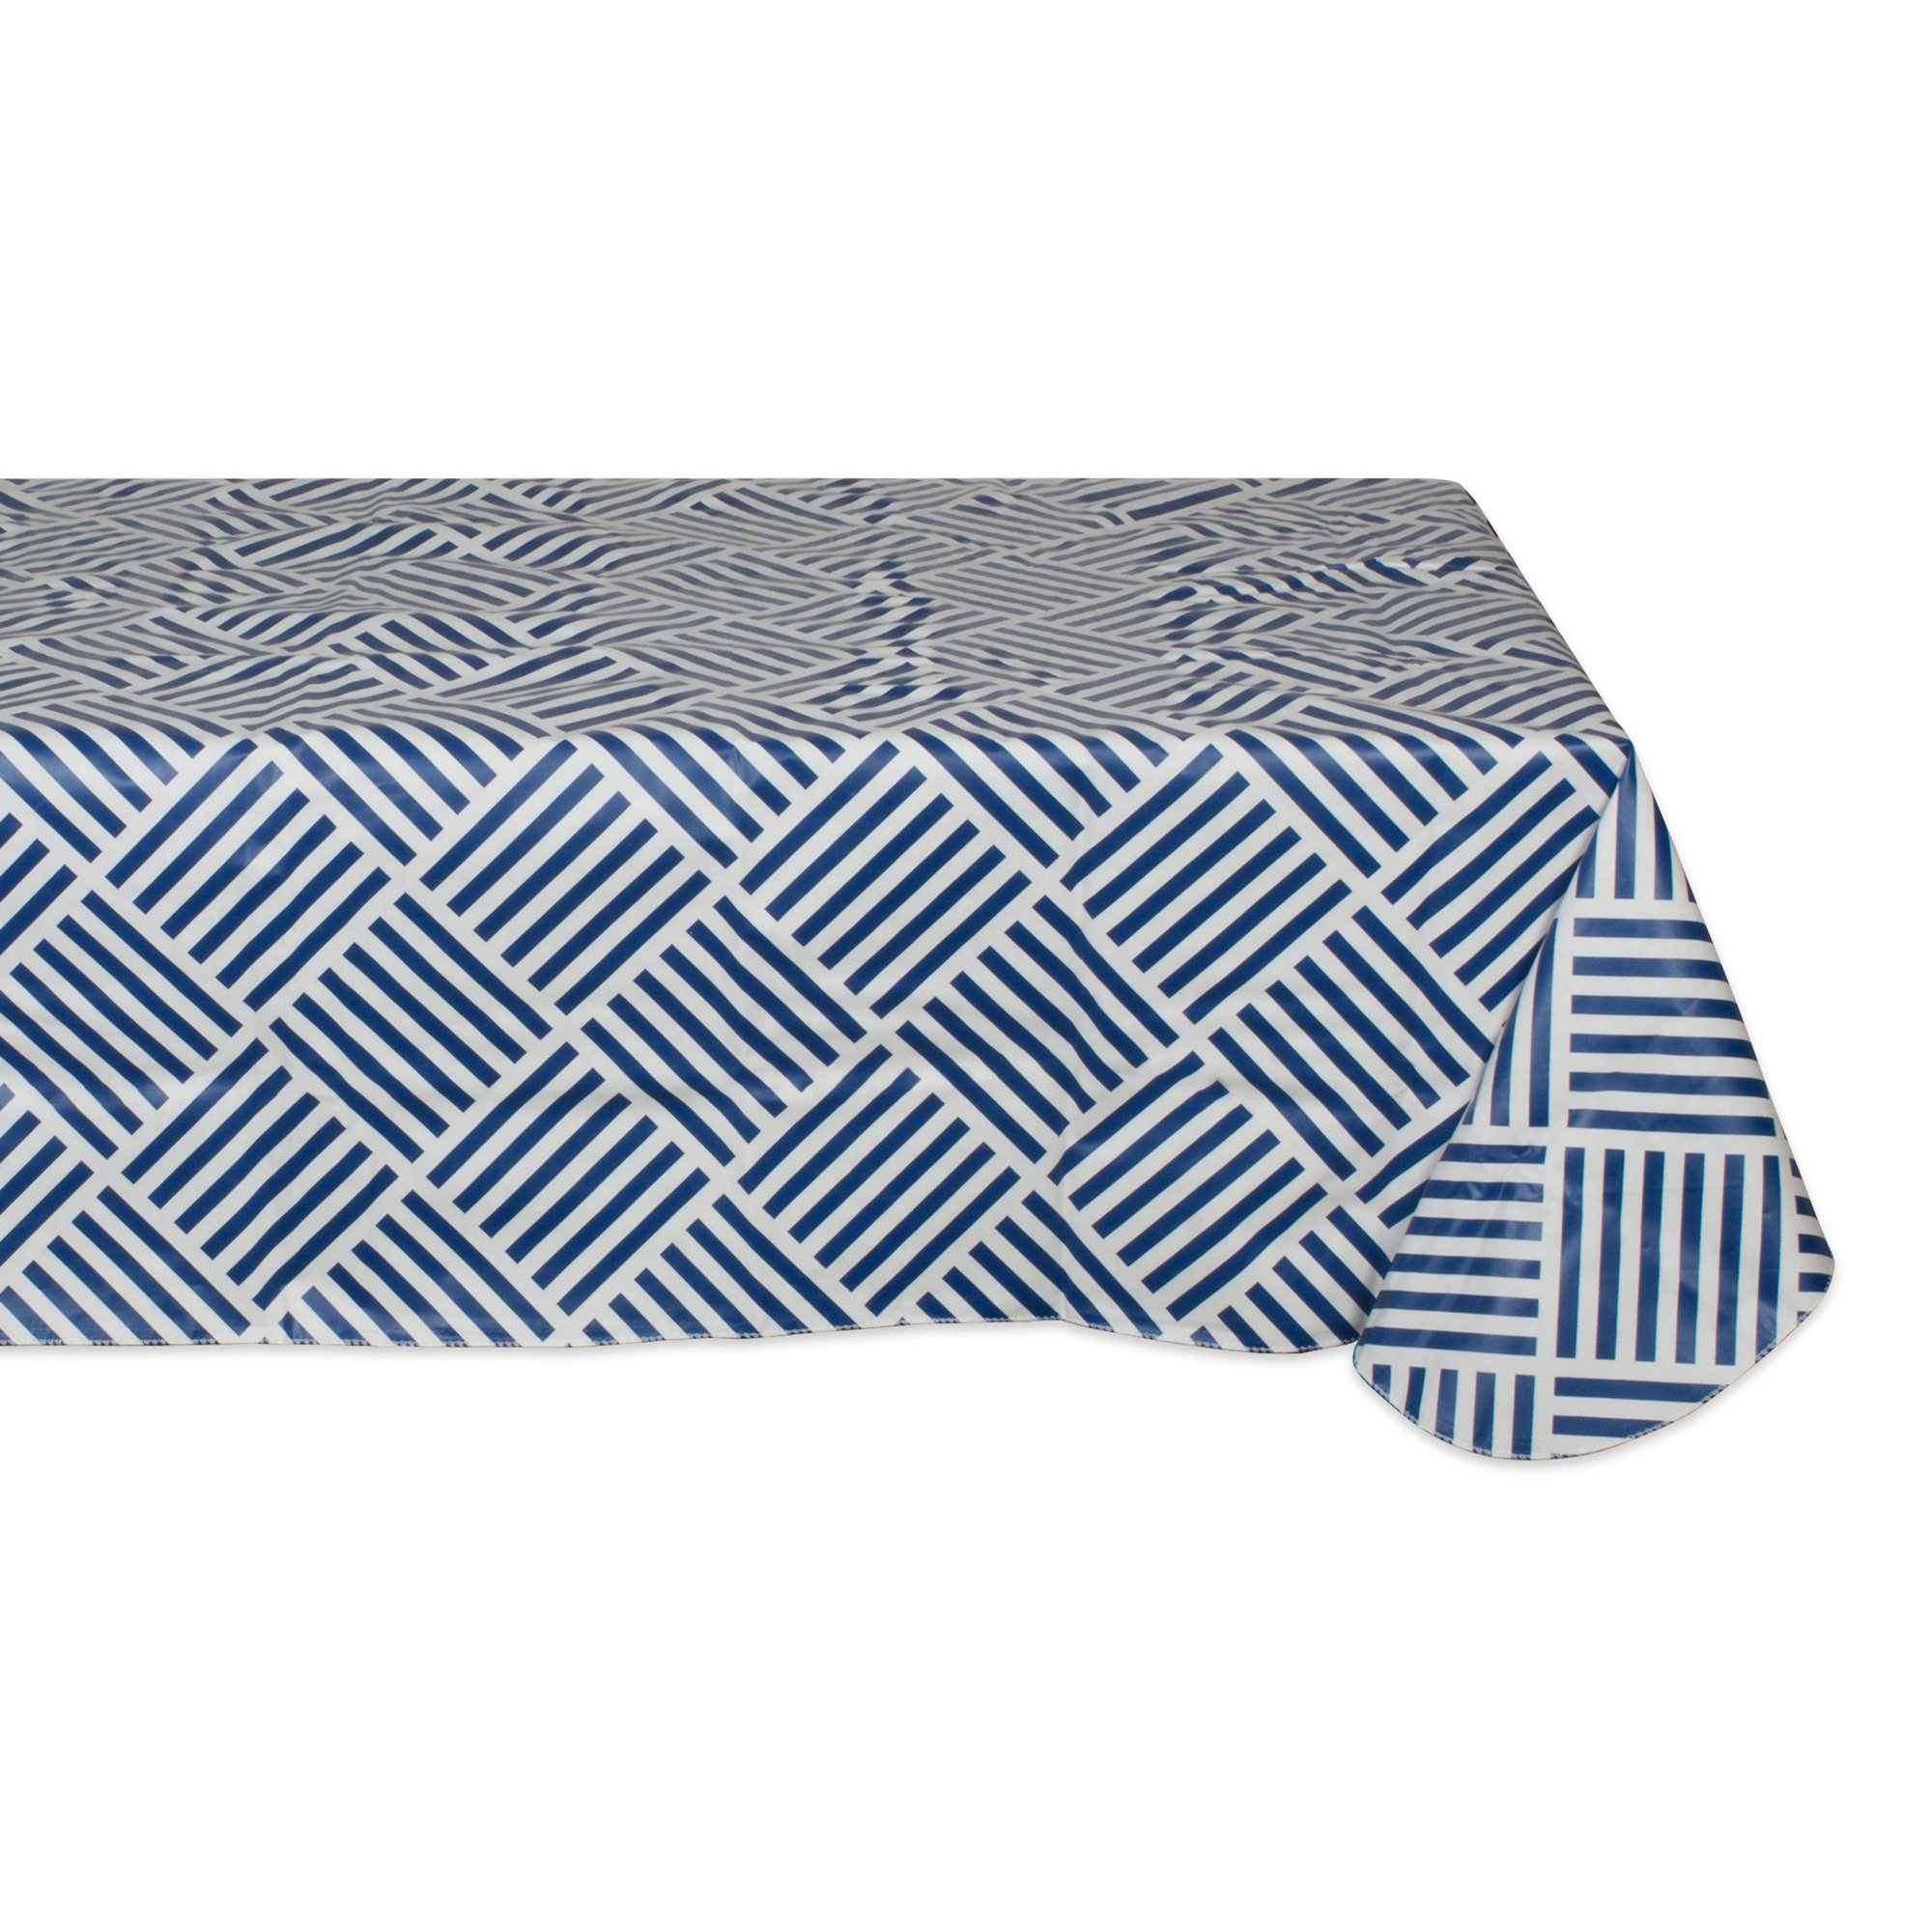 Waterproof Spill Proof Vinyl Geometric Grid Tablecloth, 60x102'', Perfect for Spring, Summer, Indoor, Outdoor Picnics & Potlucks Party Party or Everyday Use-Navy